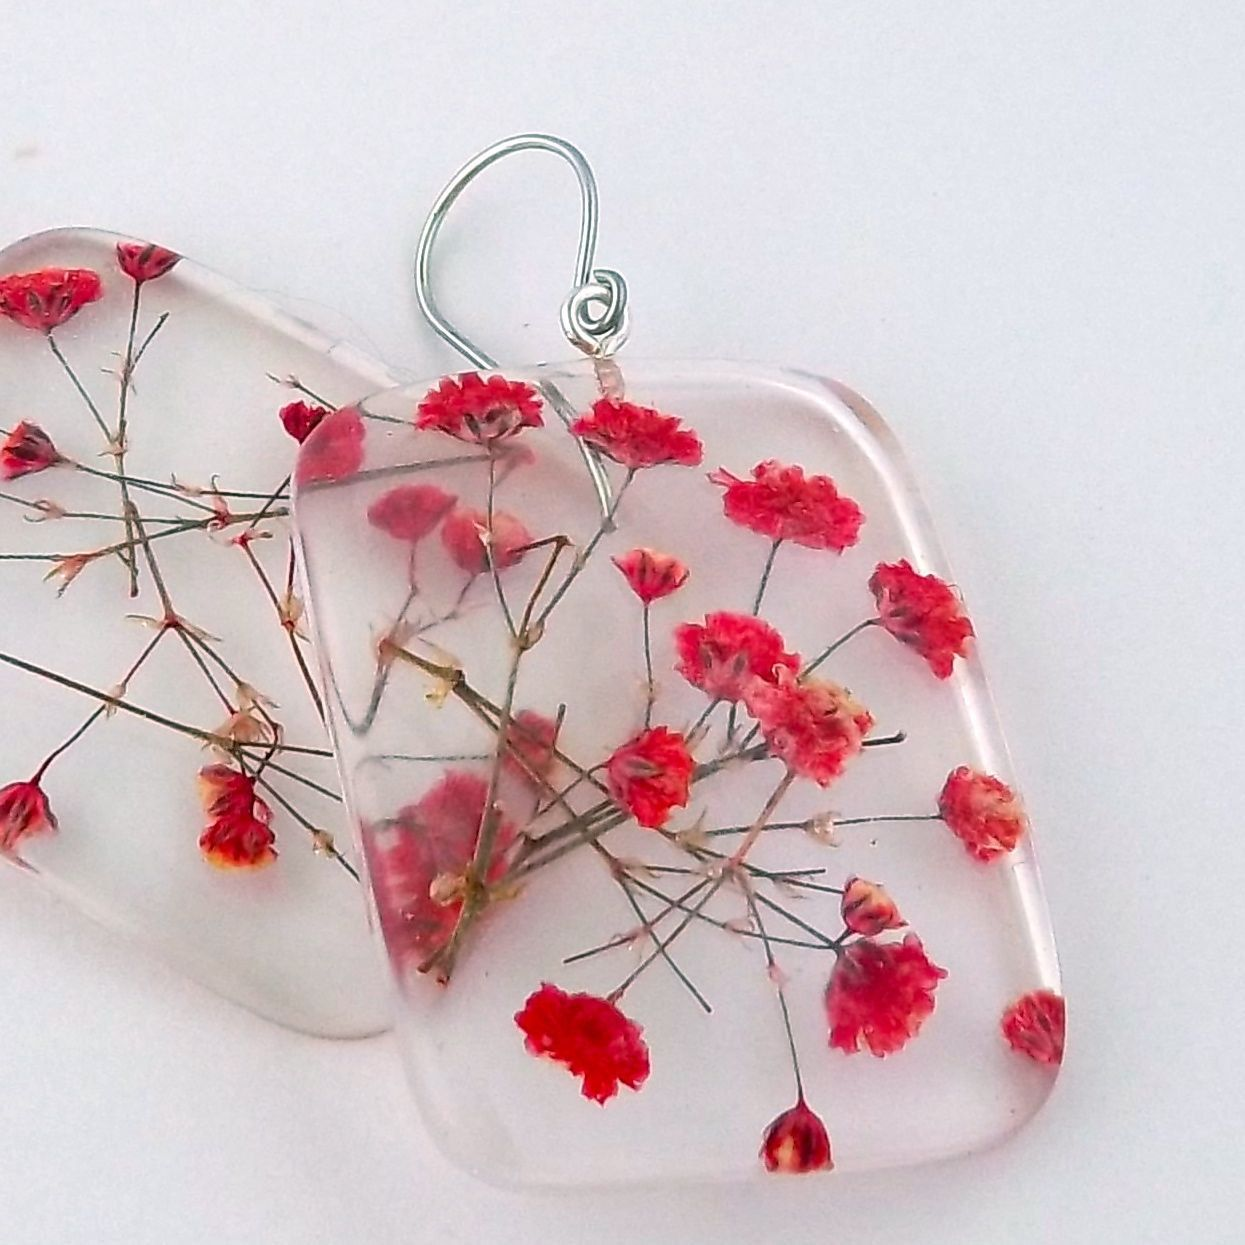 Earrings | Summer Smith. Pressed red baby's breath that are encased in resin, with sterling silver ear wires.